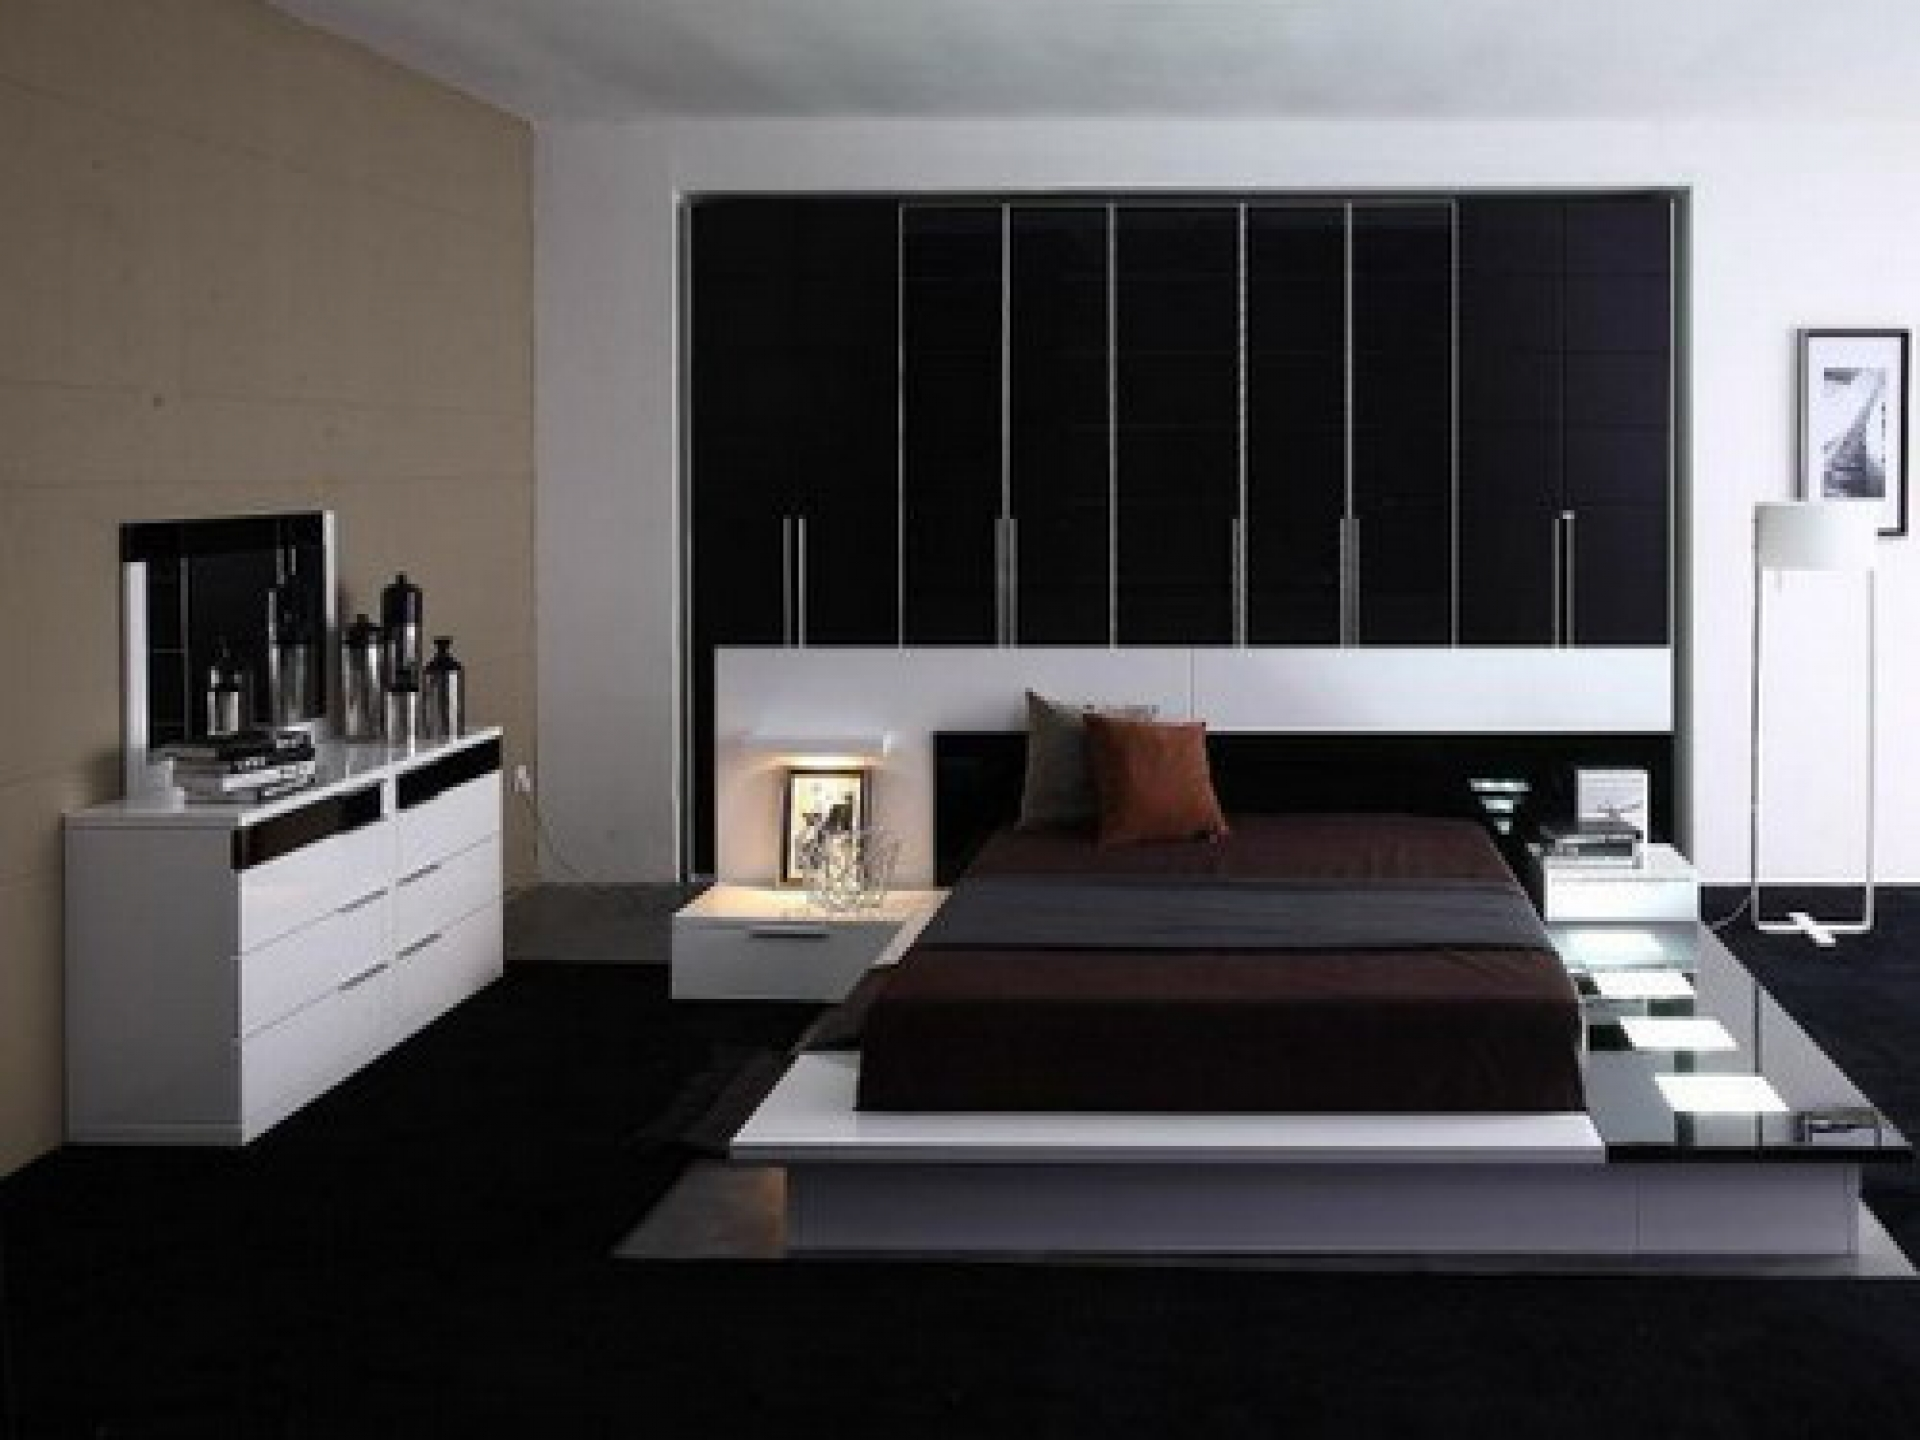 bedroom-simple-contemporary-bedroom-design-ideas-2015-with-picturesque-bedroom-interior-decorating-ideas-contemporary-bedroom-design-ideas-2015-bedroom-set-furniture-kids-bedroom-interior